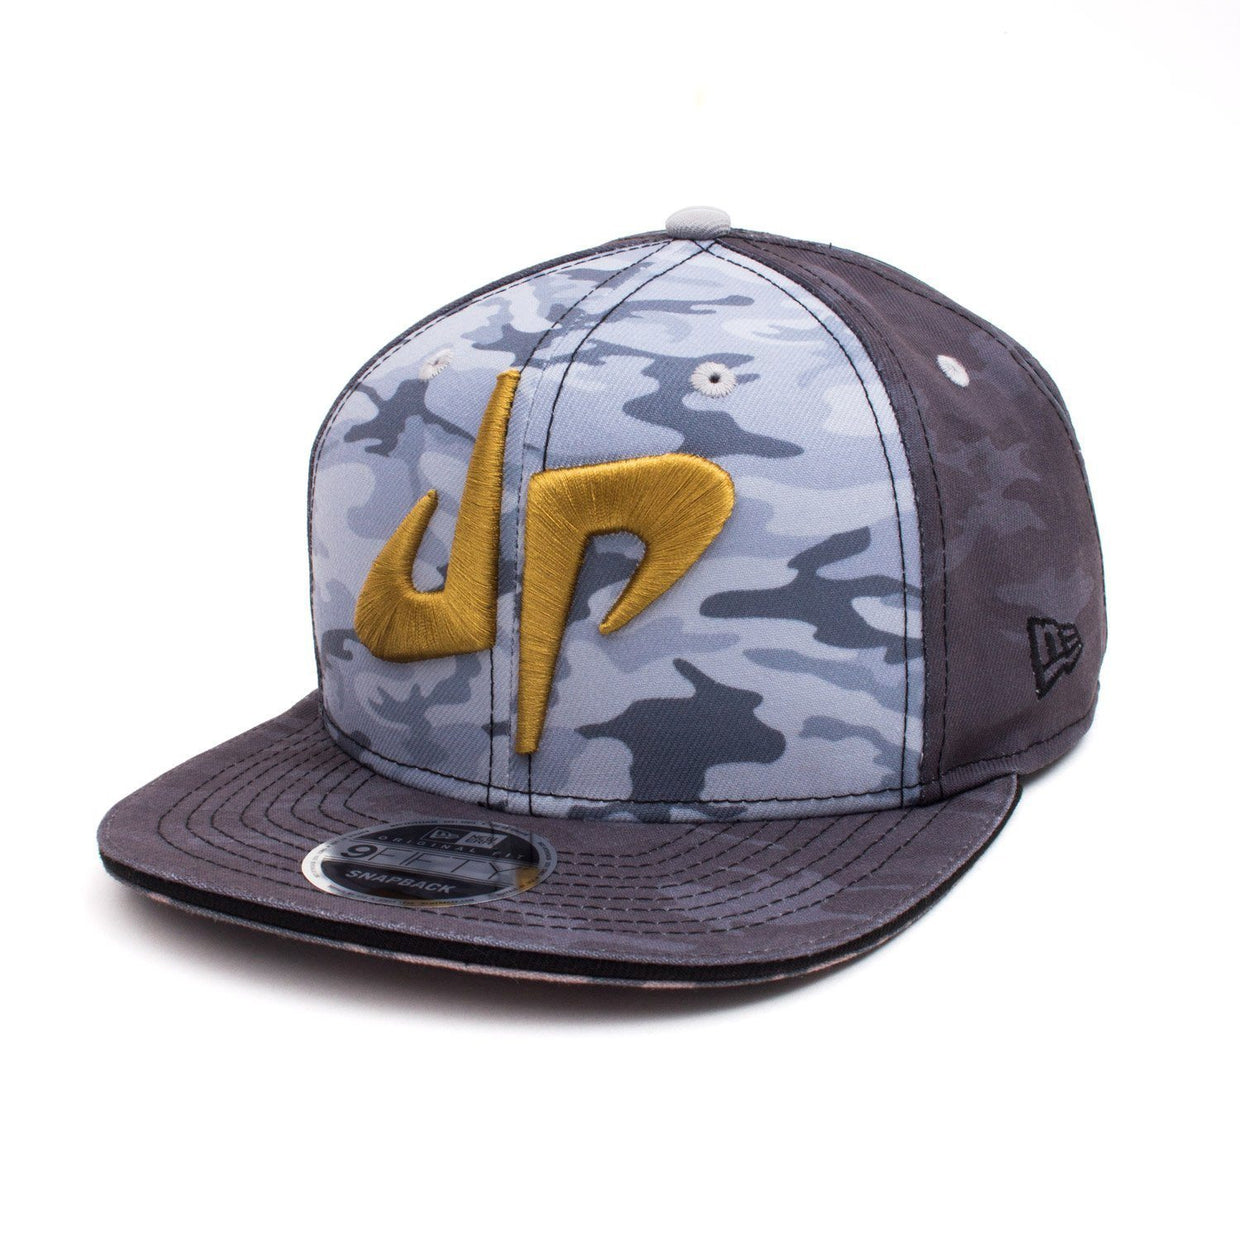 DP x New Era Snapback 9Fifty Snapback // Battles Combat